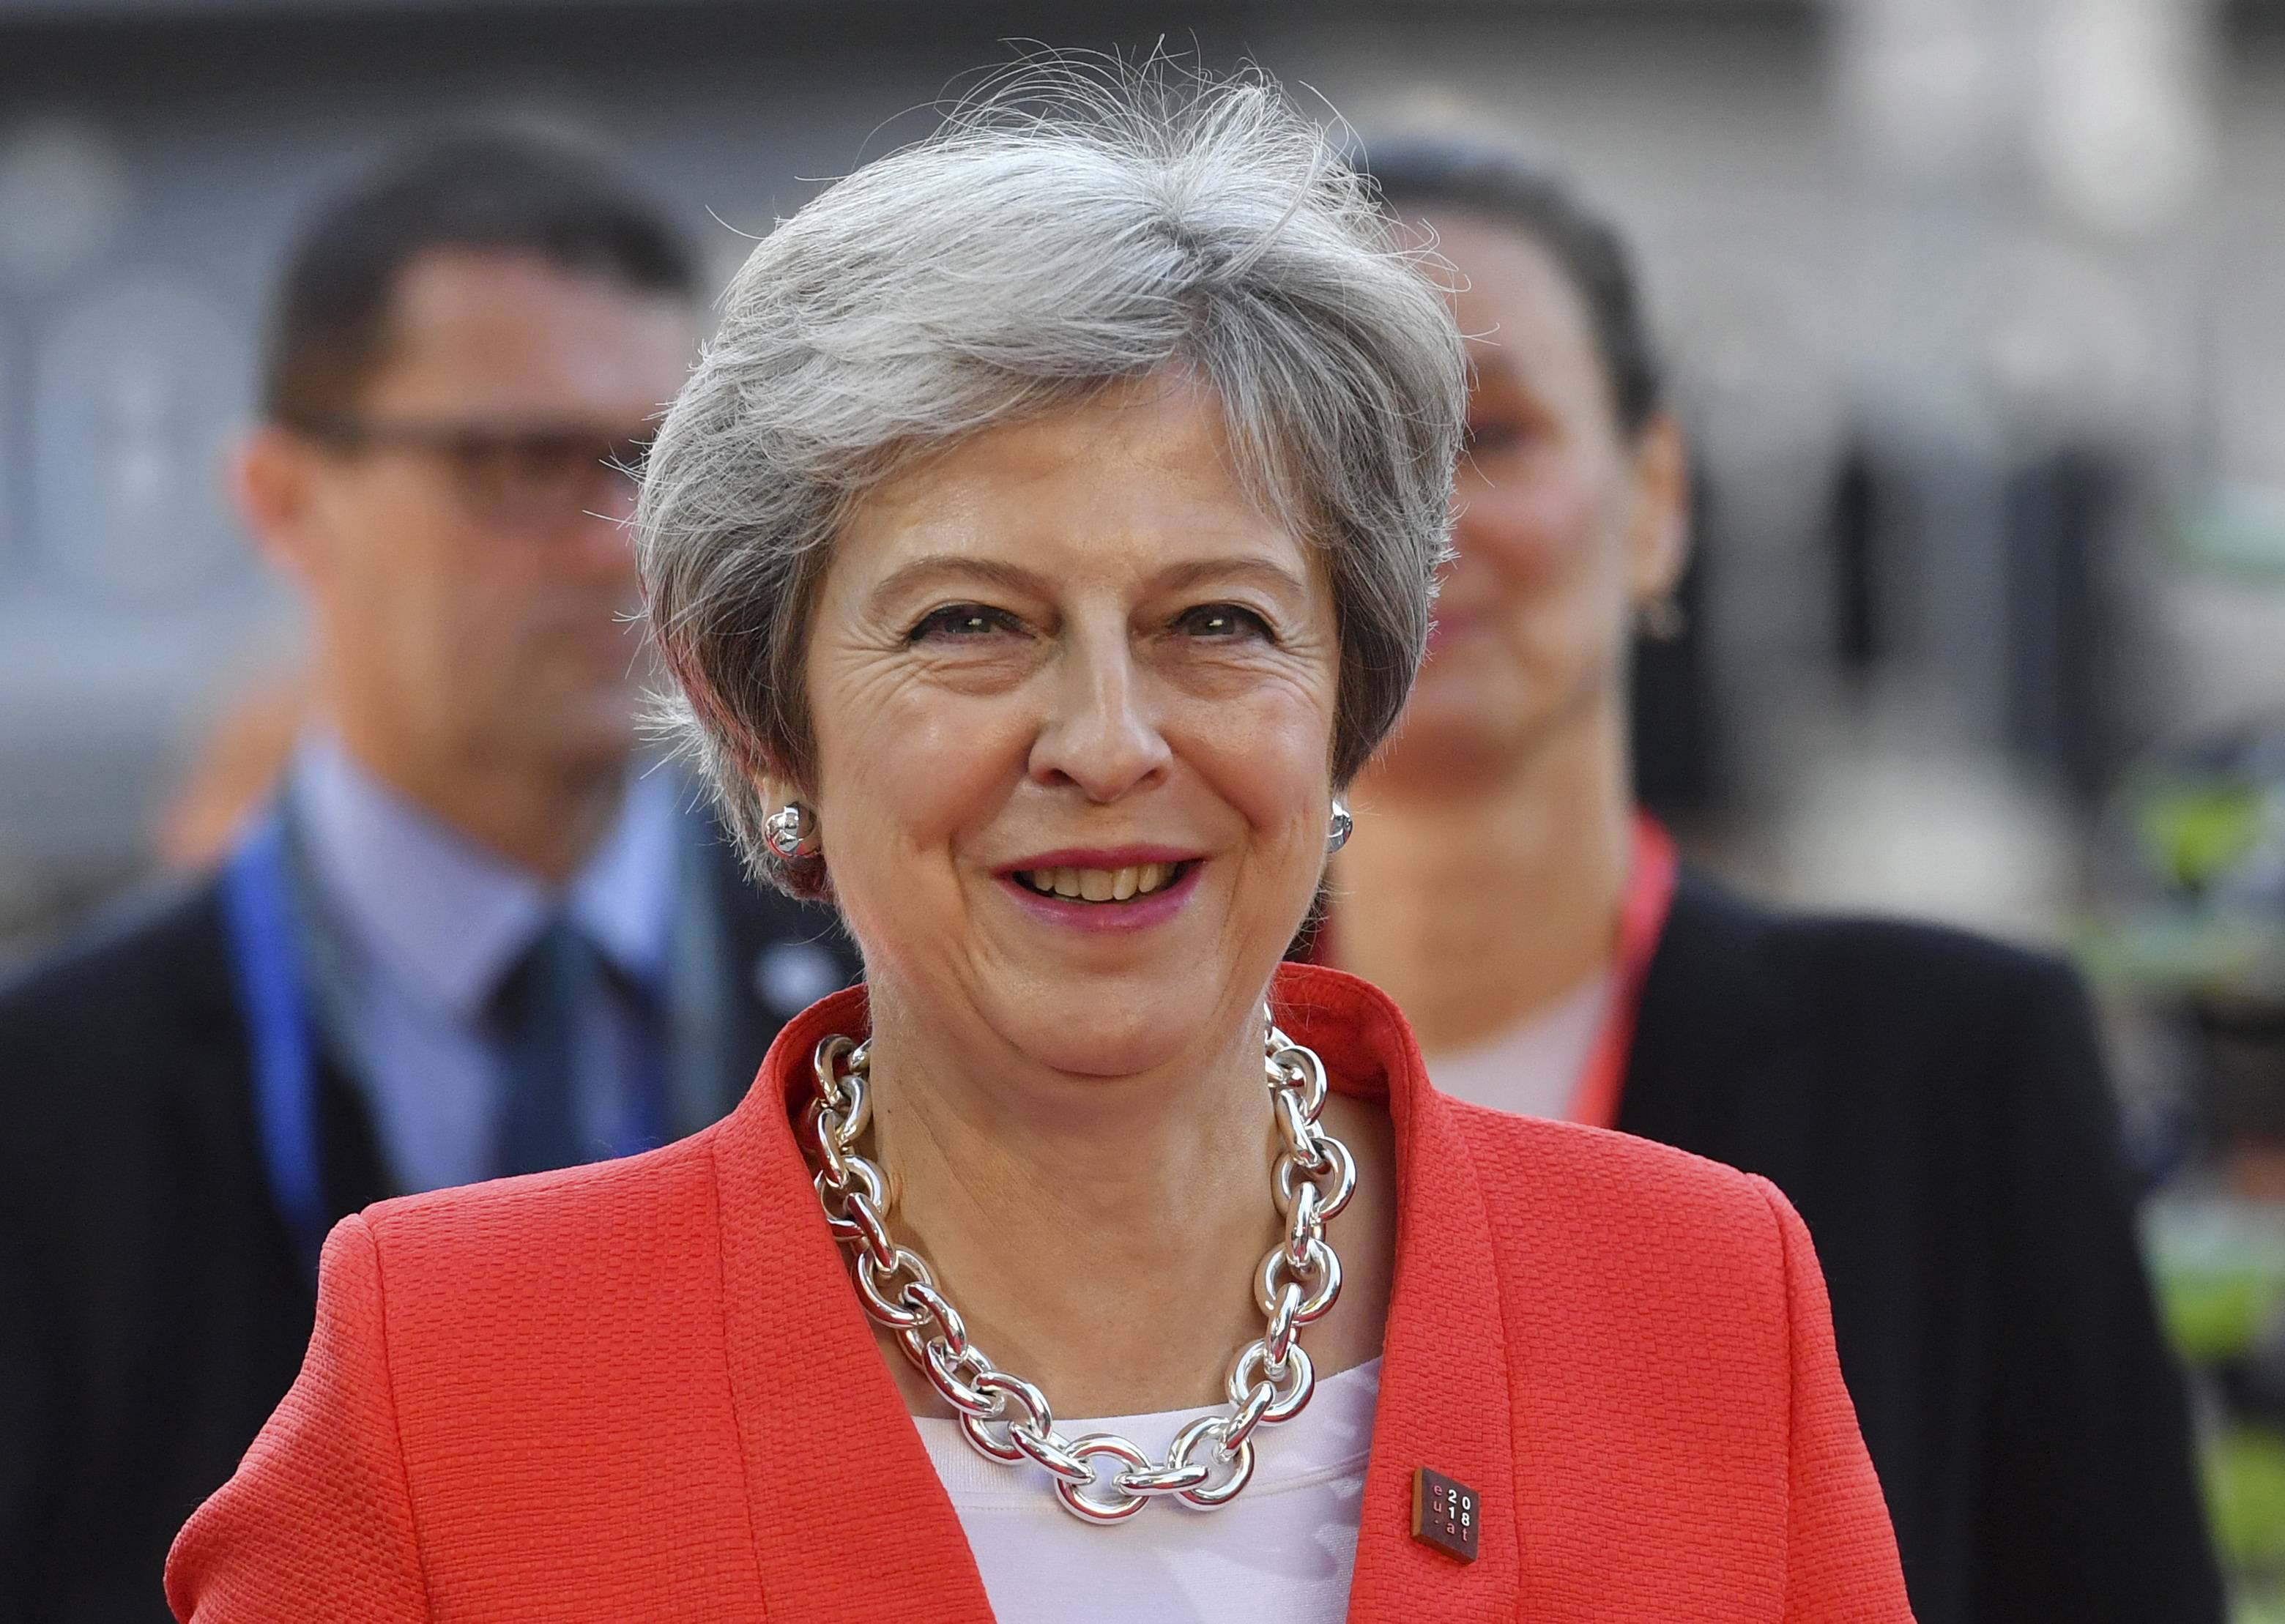 British Prime Minister Theresa May smiles when arriving at the informal EU summit in Salzburg, Austria, Thursday, Sept. 20, 2018.